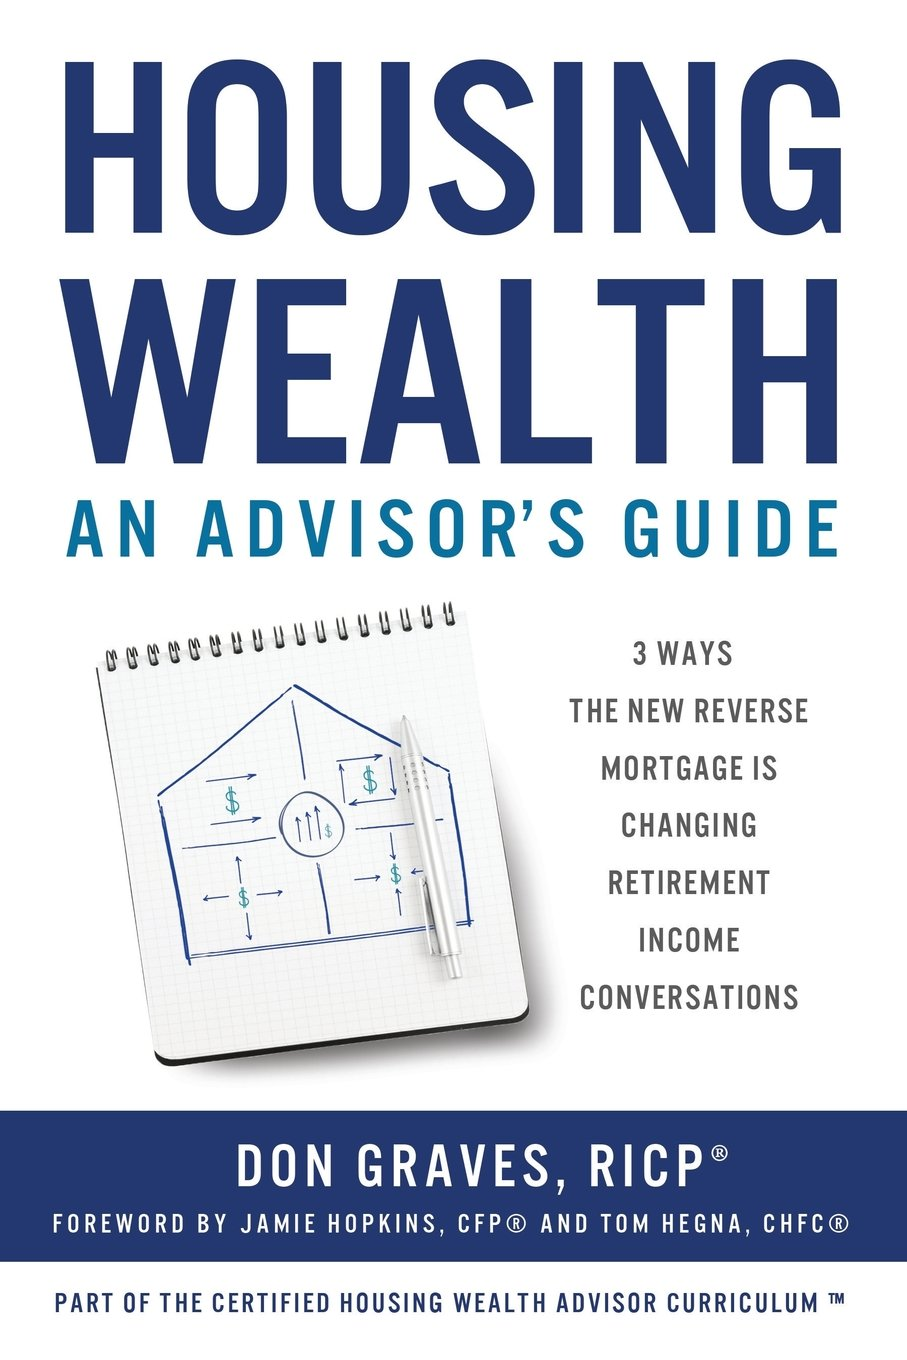 Housing Wealth 3 Ways The New Reverse Mortgage Is Changing